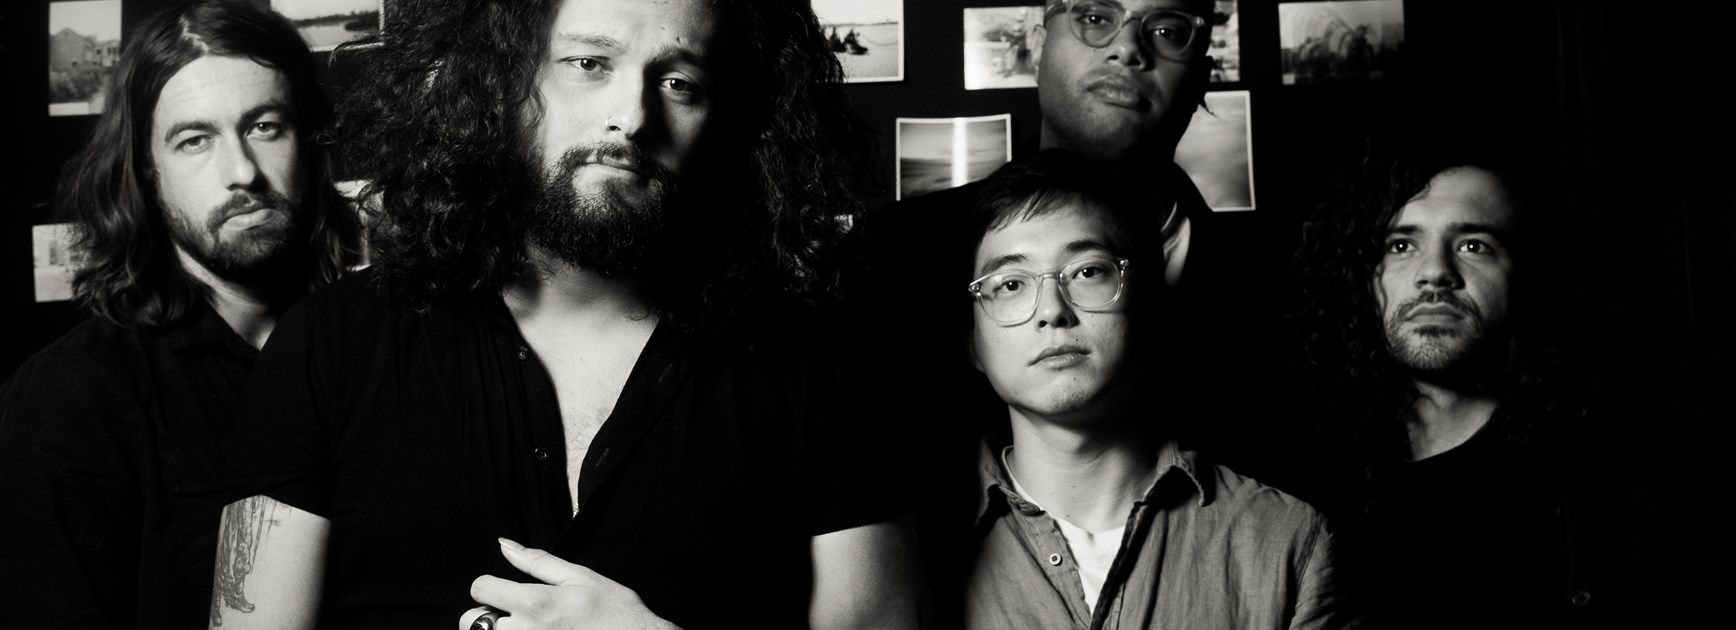 Grand final act Gang of Youths.